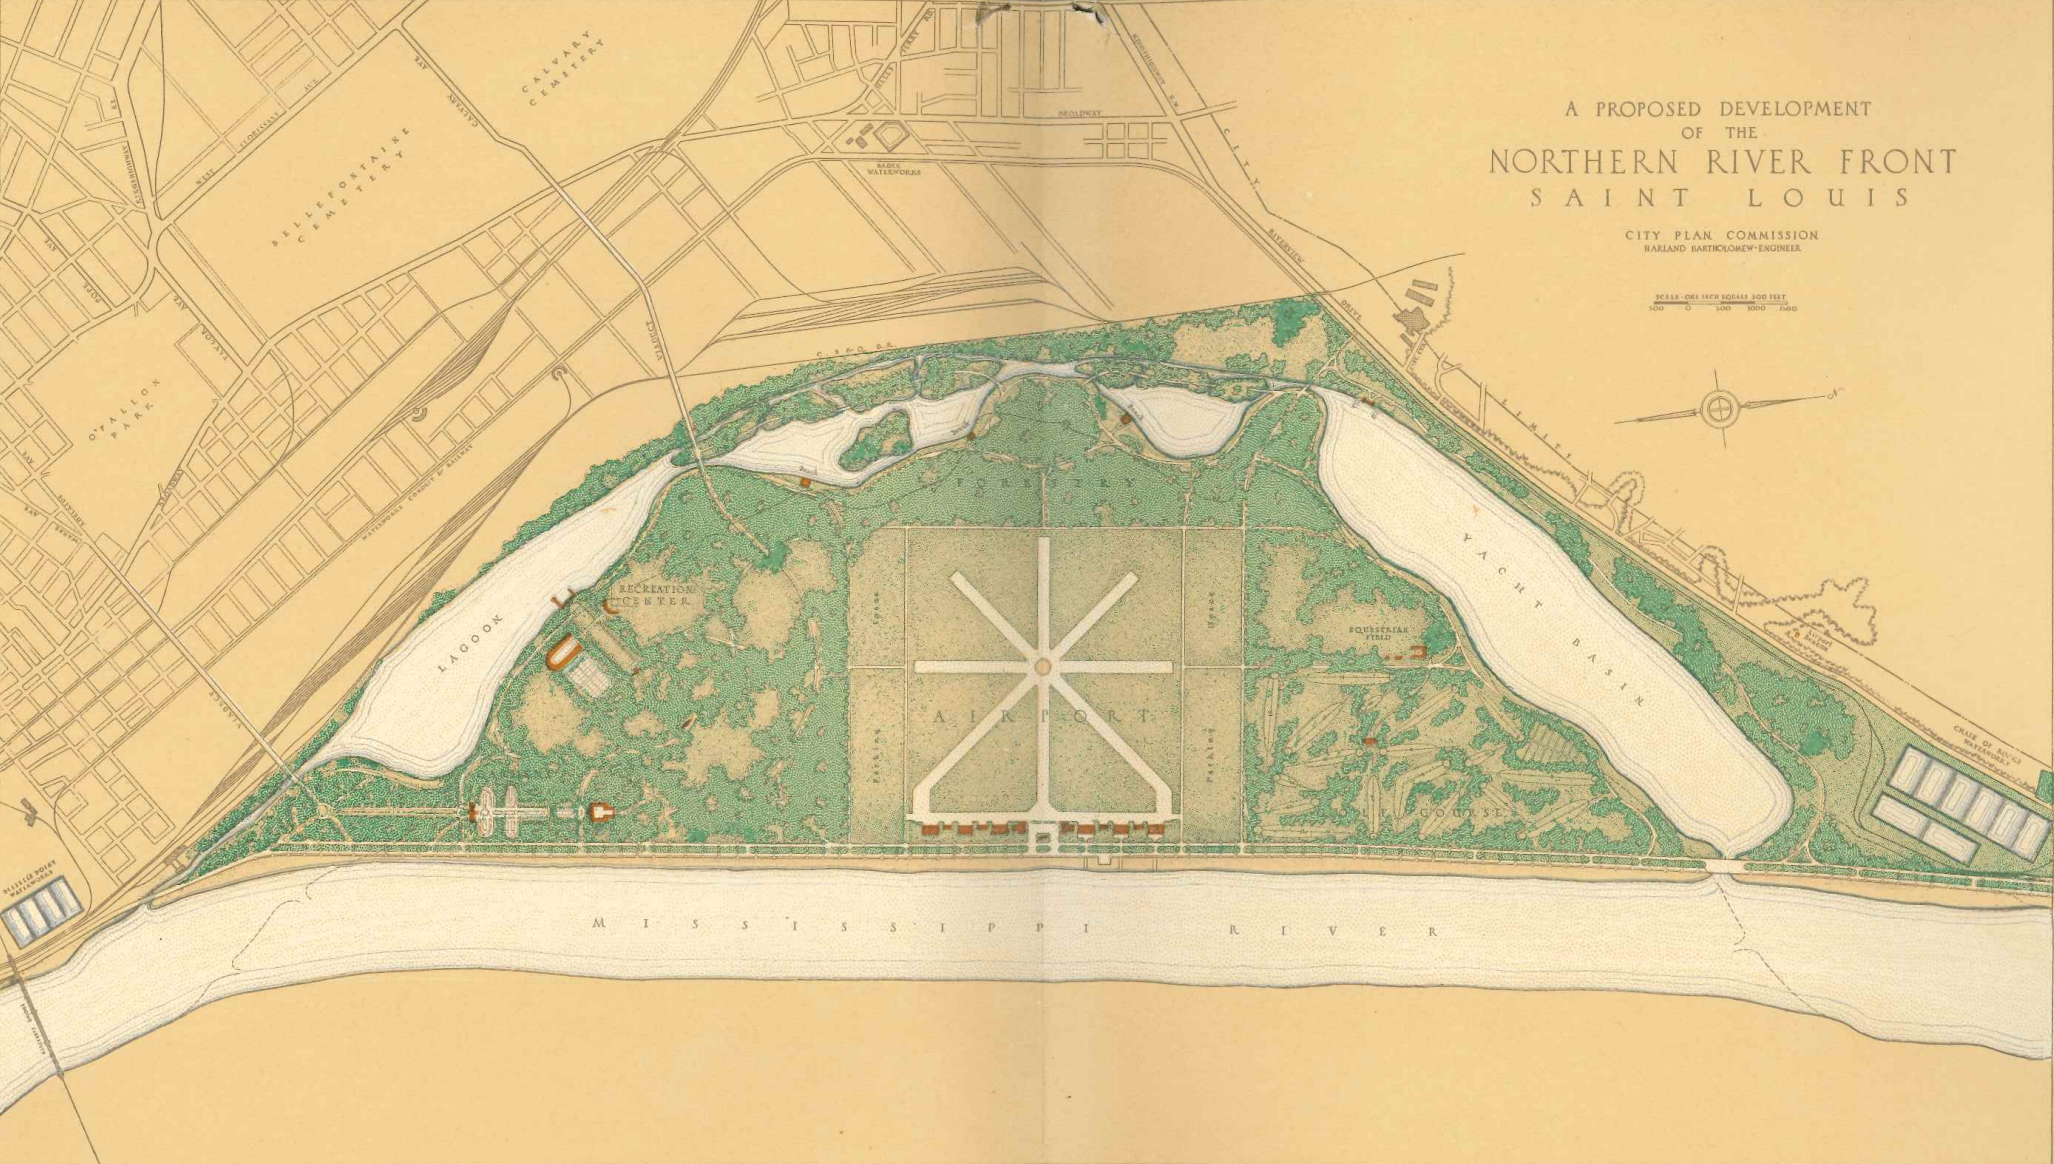 Plans for the Northern and Southern Riverfronts – St. Louis 1929